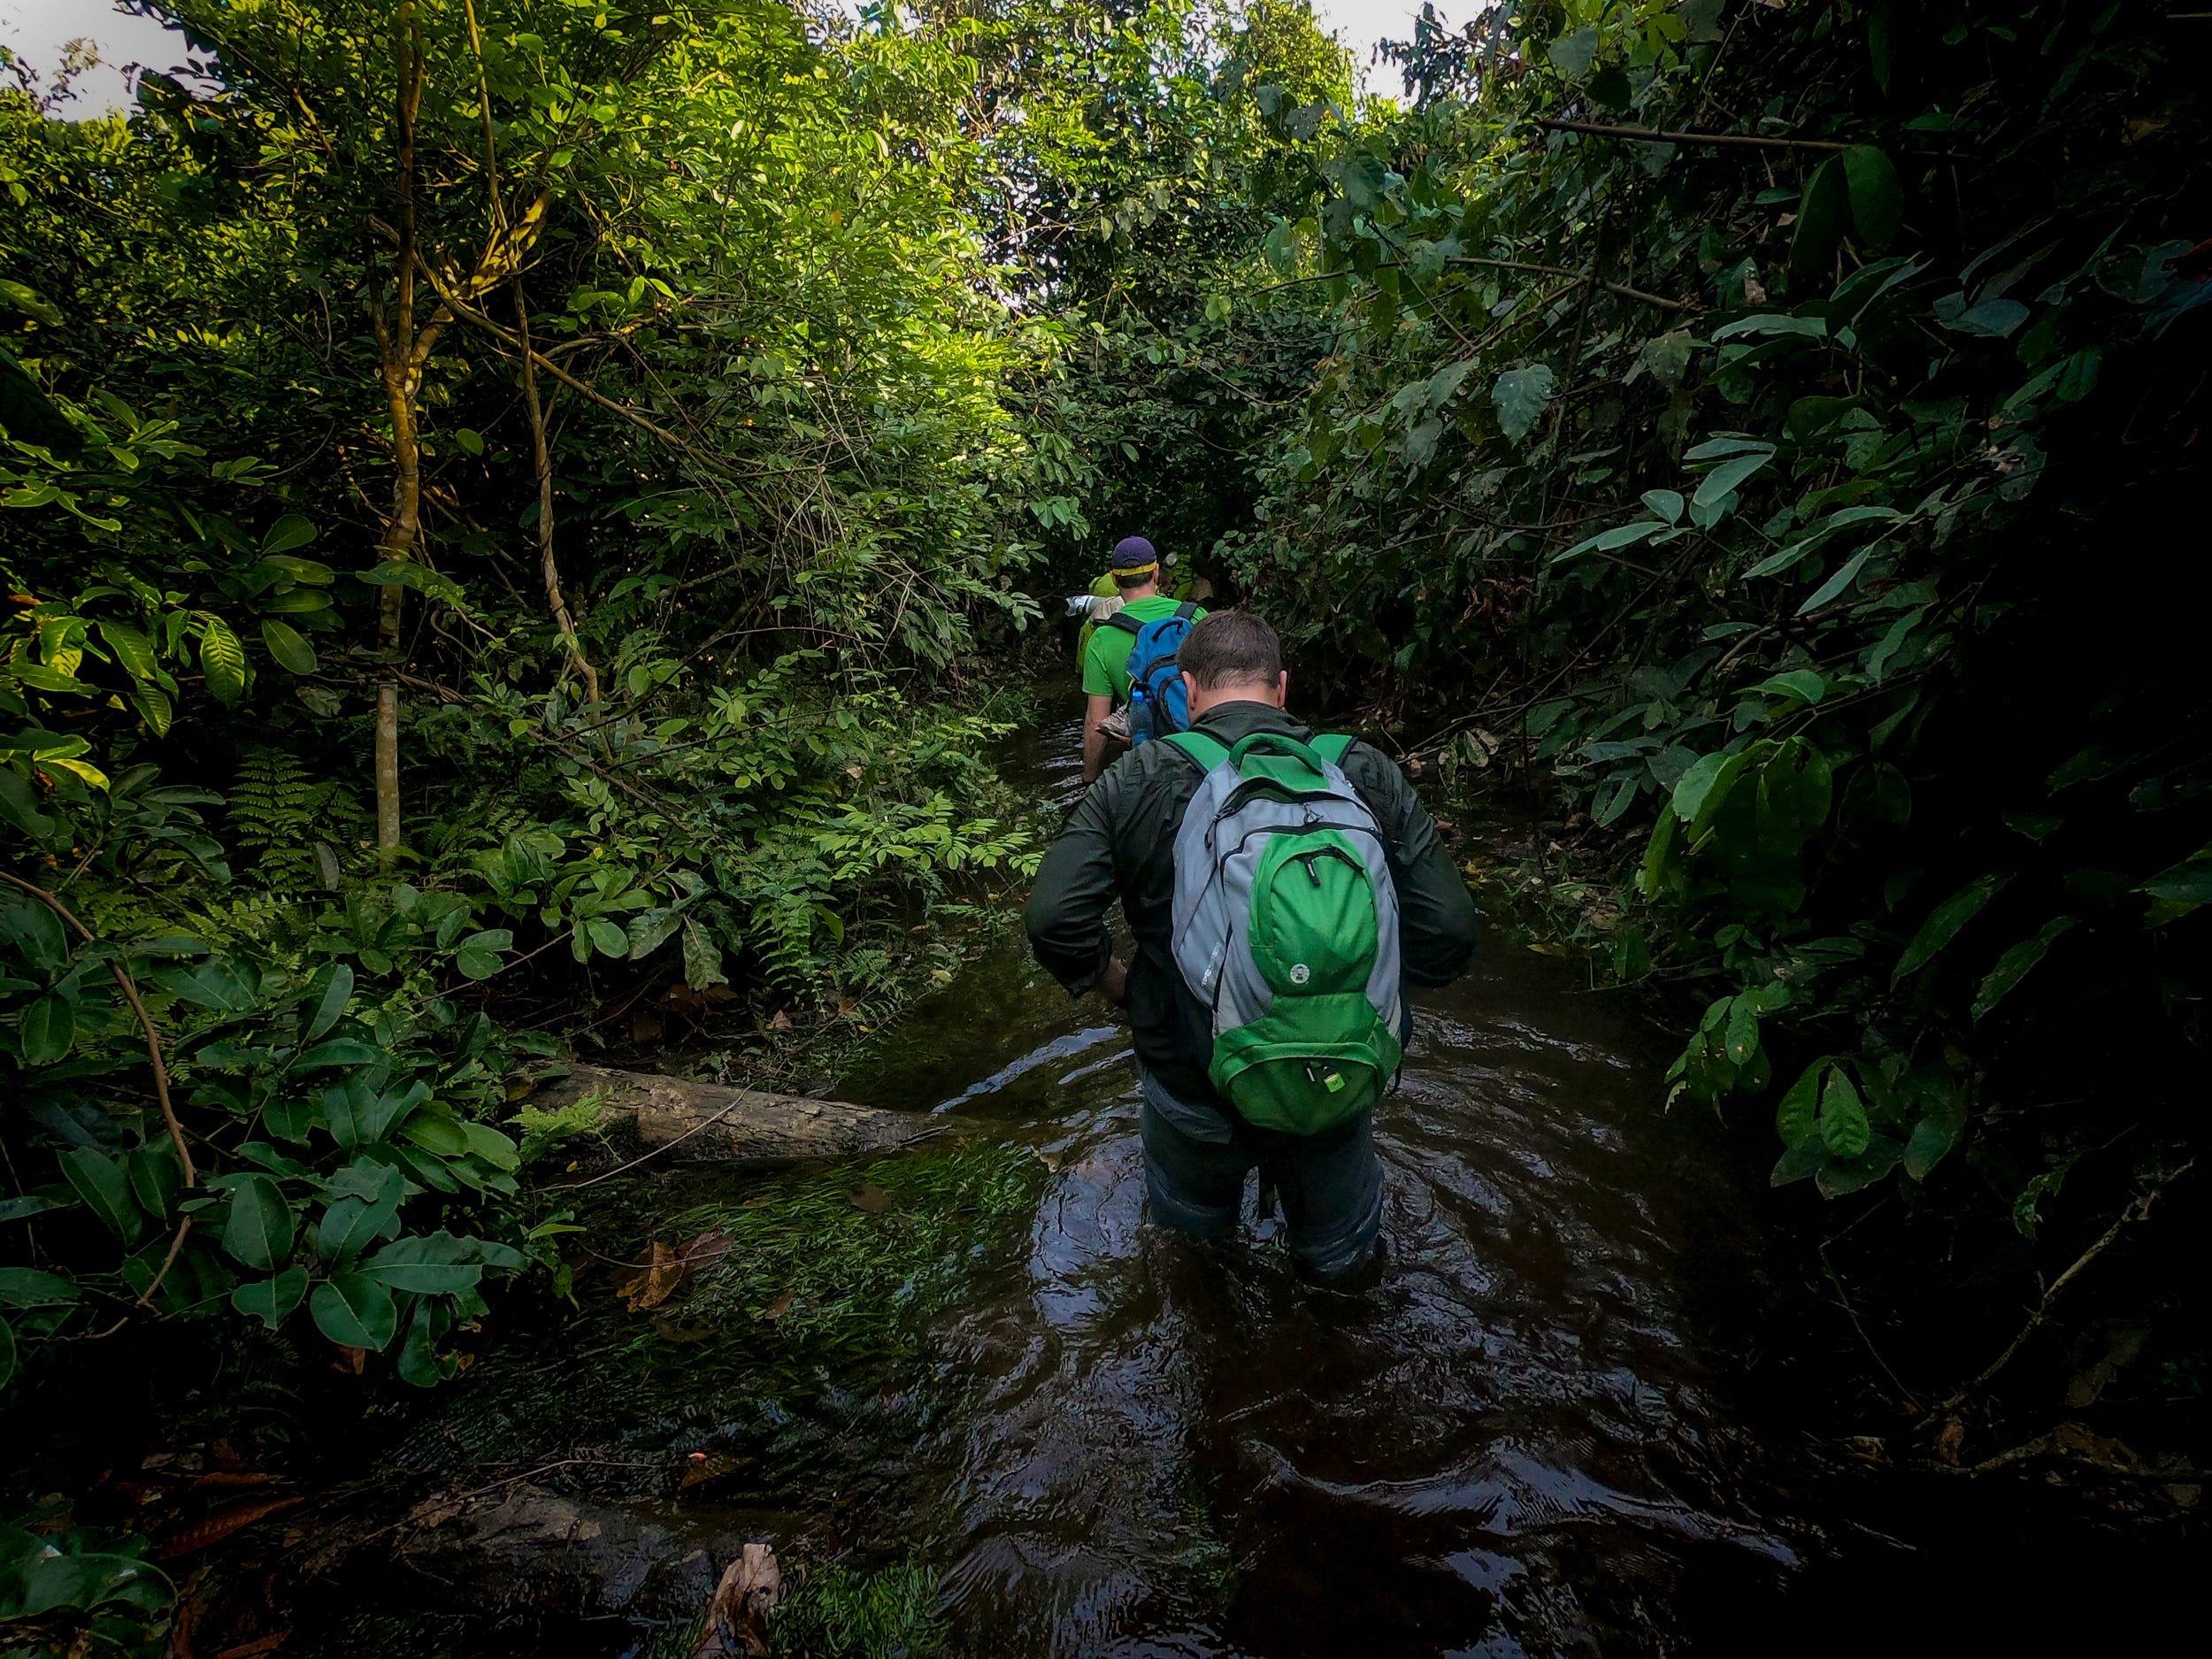 Ron Evans follows Dave Morgan through a swamp on the hike to the Goualougo Triangle. After hiking for six hours, the 30-minute walk in the water was a refreshing relief to the heat and humidity.